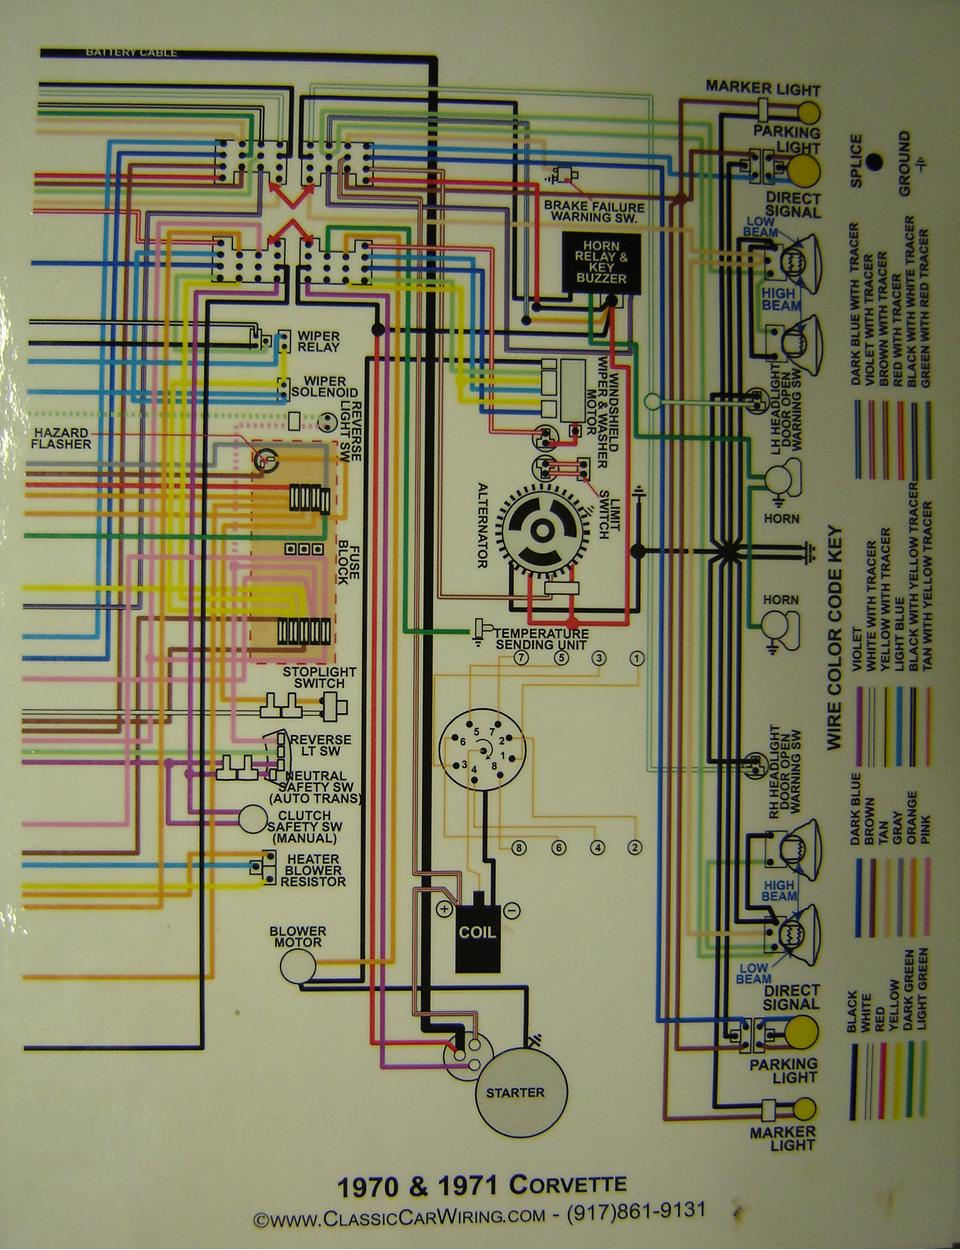 1970 71 corvette color wiring diagram B chevy diagrams corvette wiring diagram at gsmportal.co